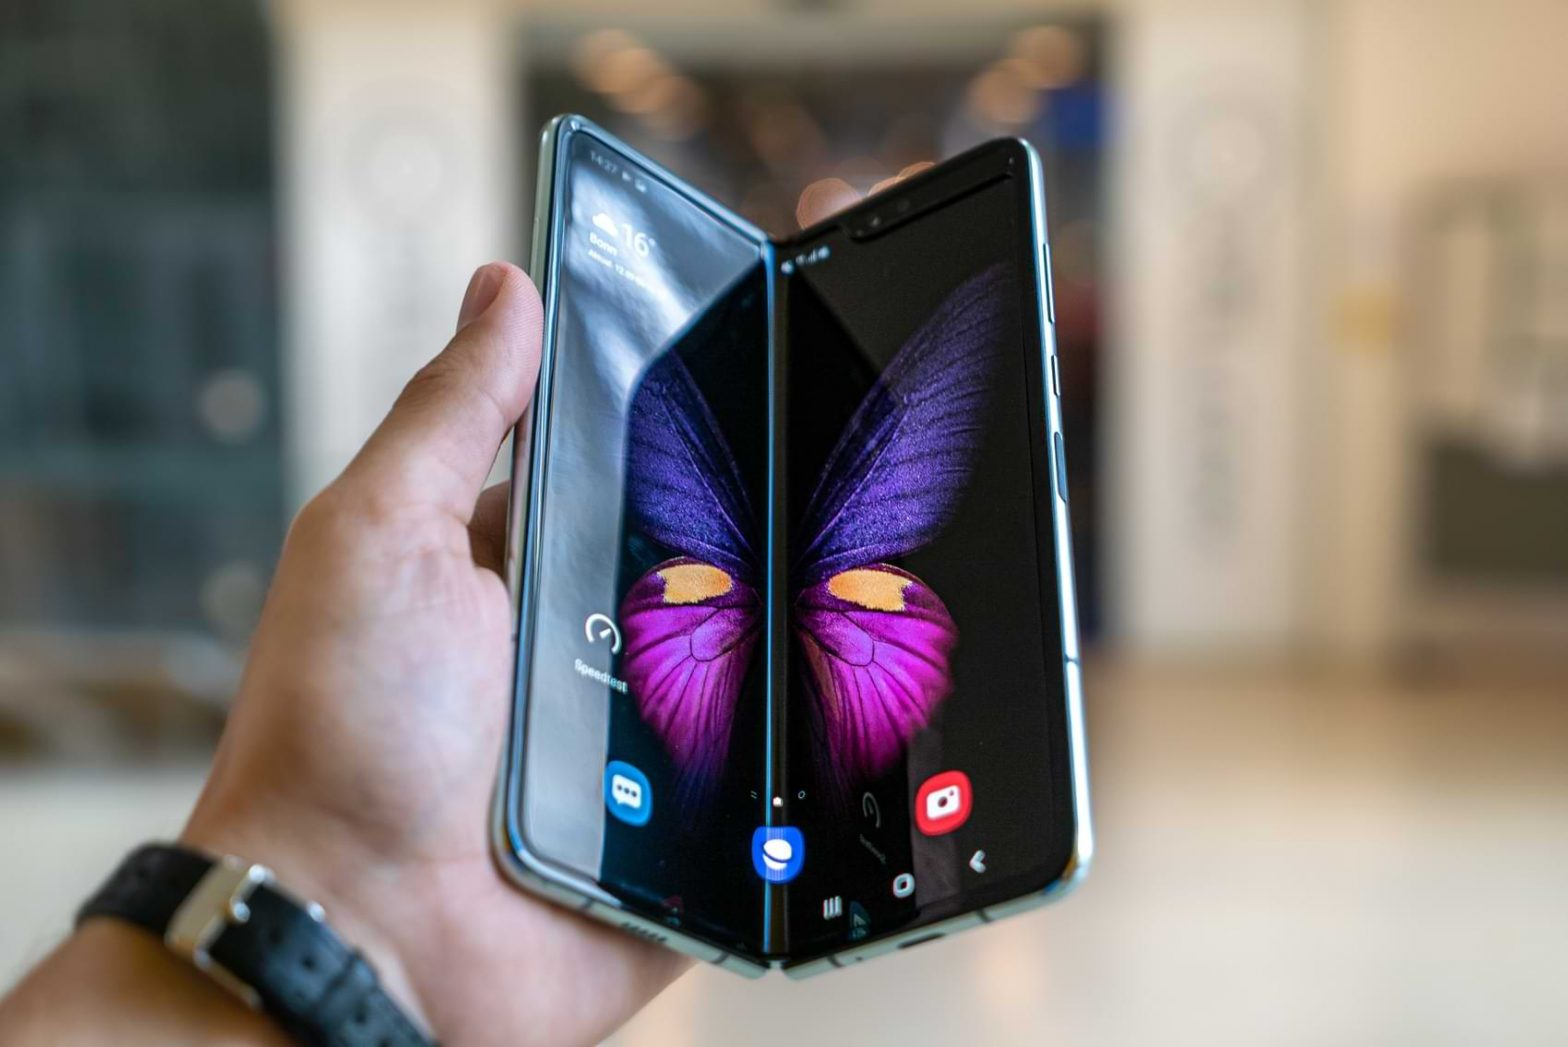 A person holds a Samsung Galaxy Z Fold device, one of Samsung's new Galaxy phones which was recently reworked and unveiled.